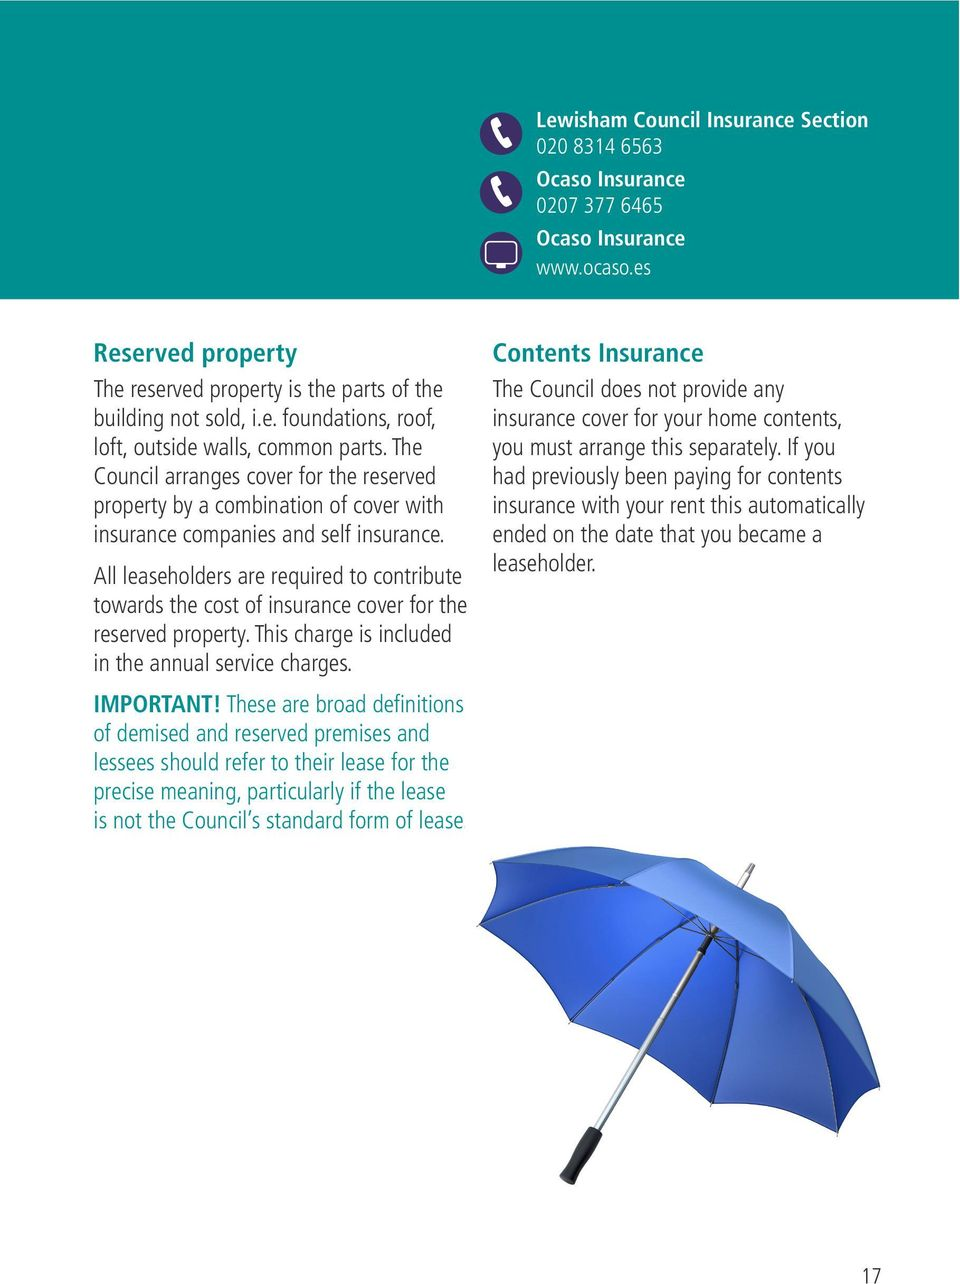 All leaseholders are required to contribute towards the cost of insurance cover for the reserved property. This charge is included in the annual service charges. IMPORTANT!